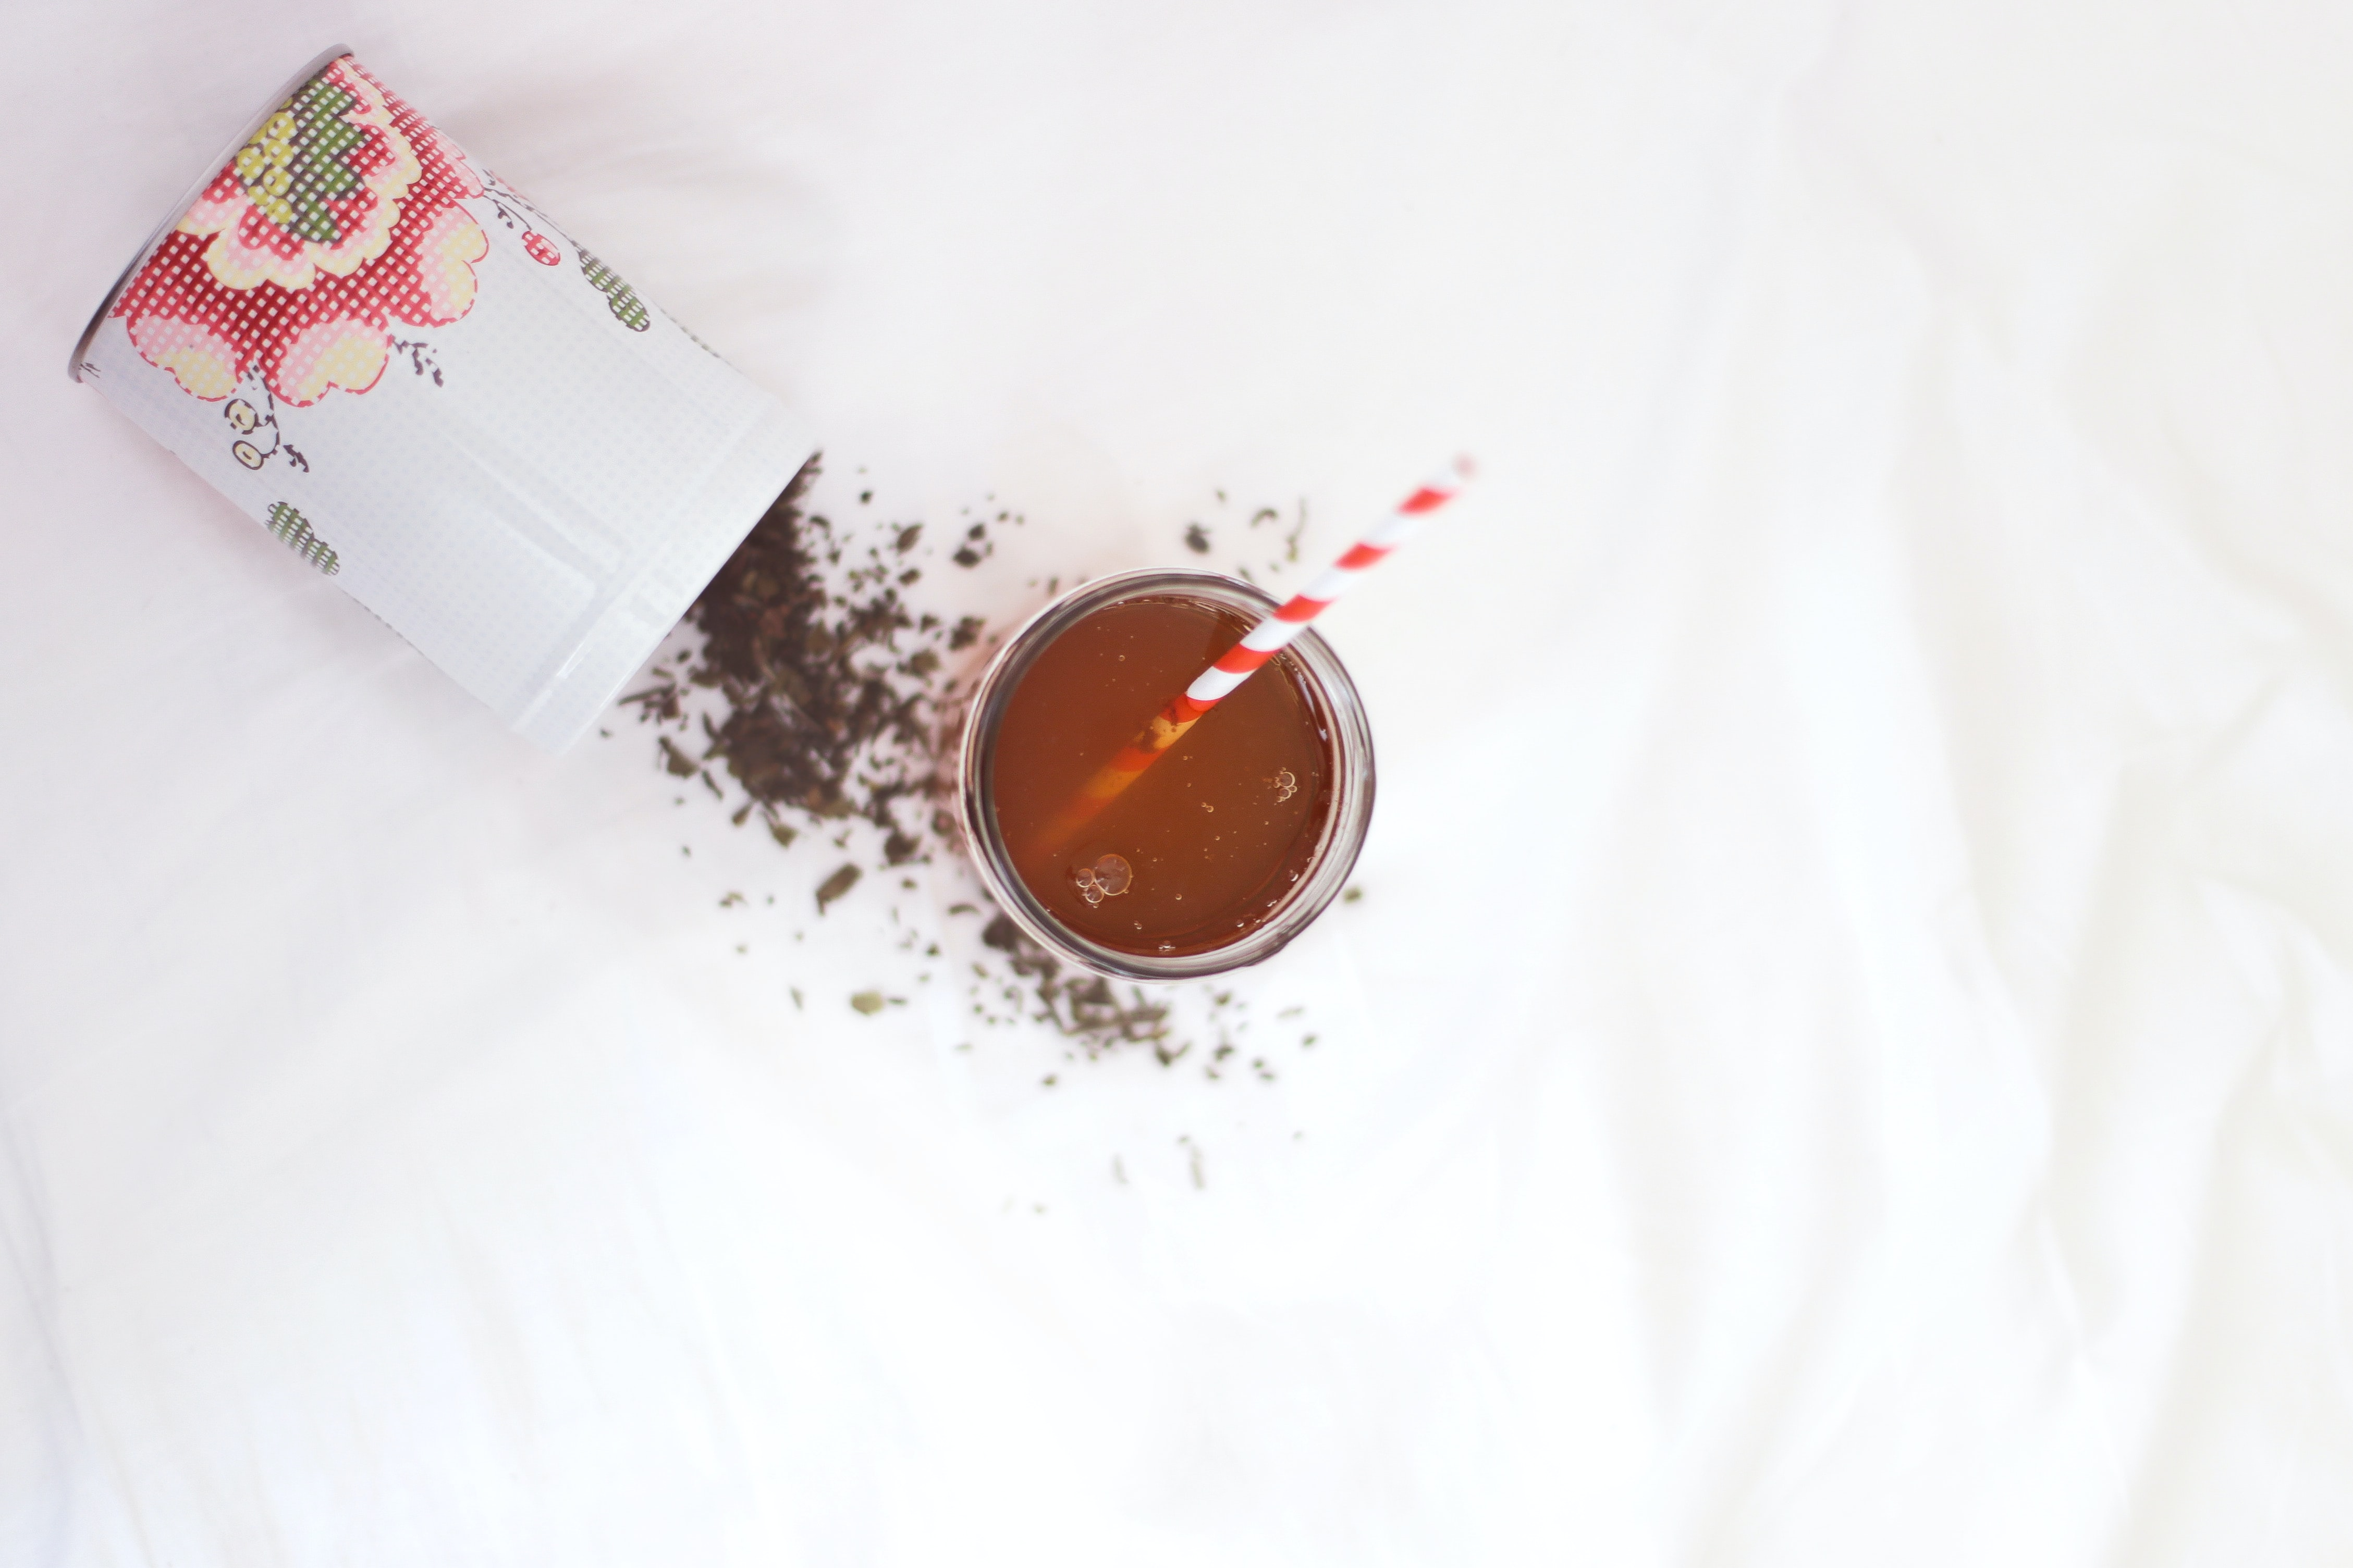 brown liquid with red and white straw